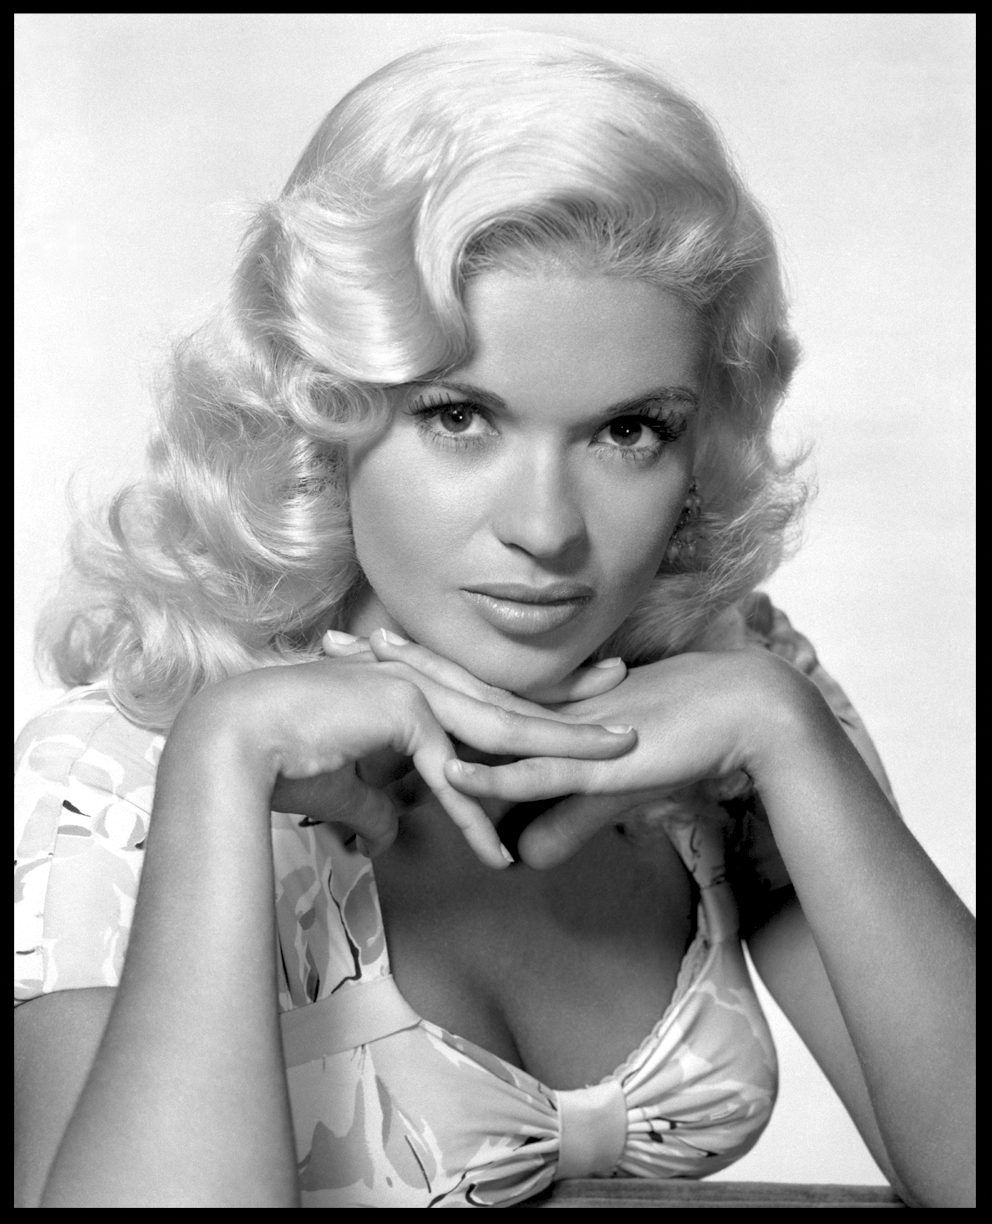 Jane Mansfield c.1957 from original 4x5 negative